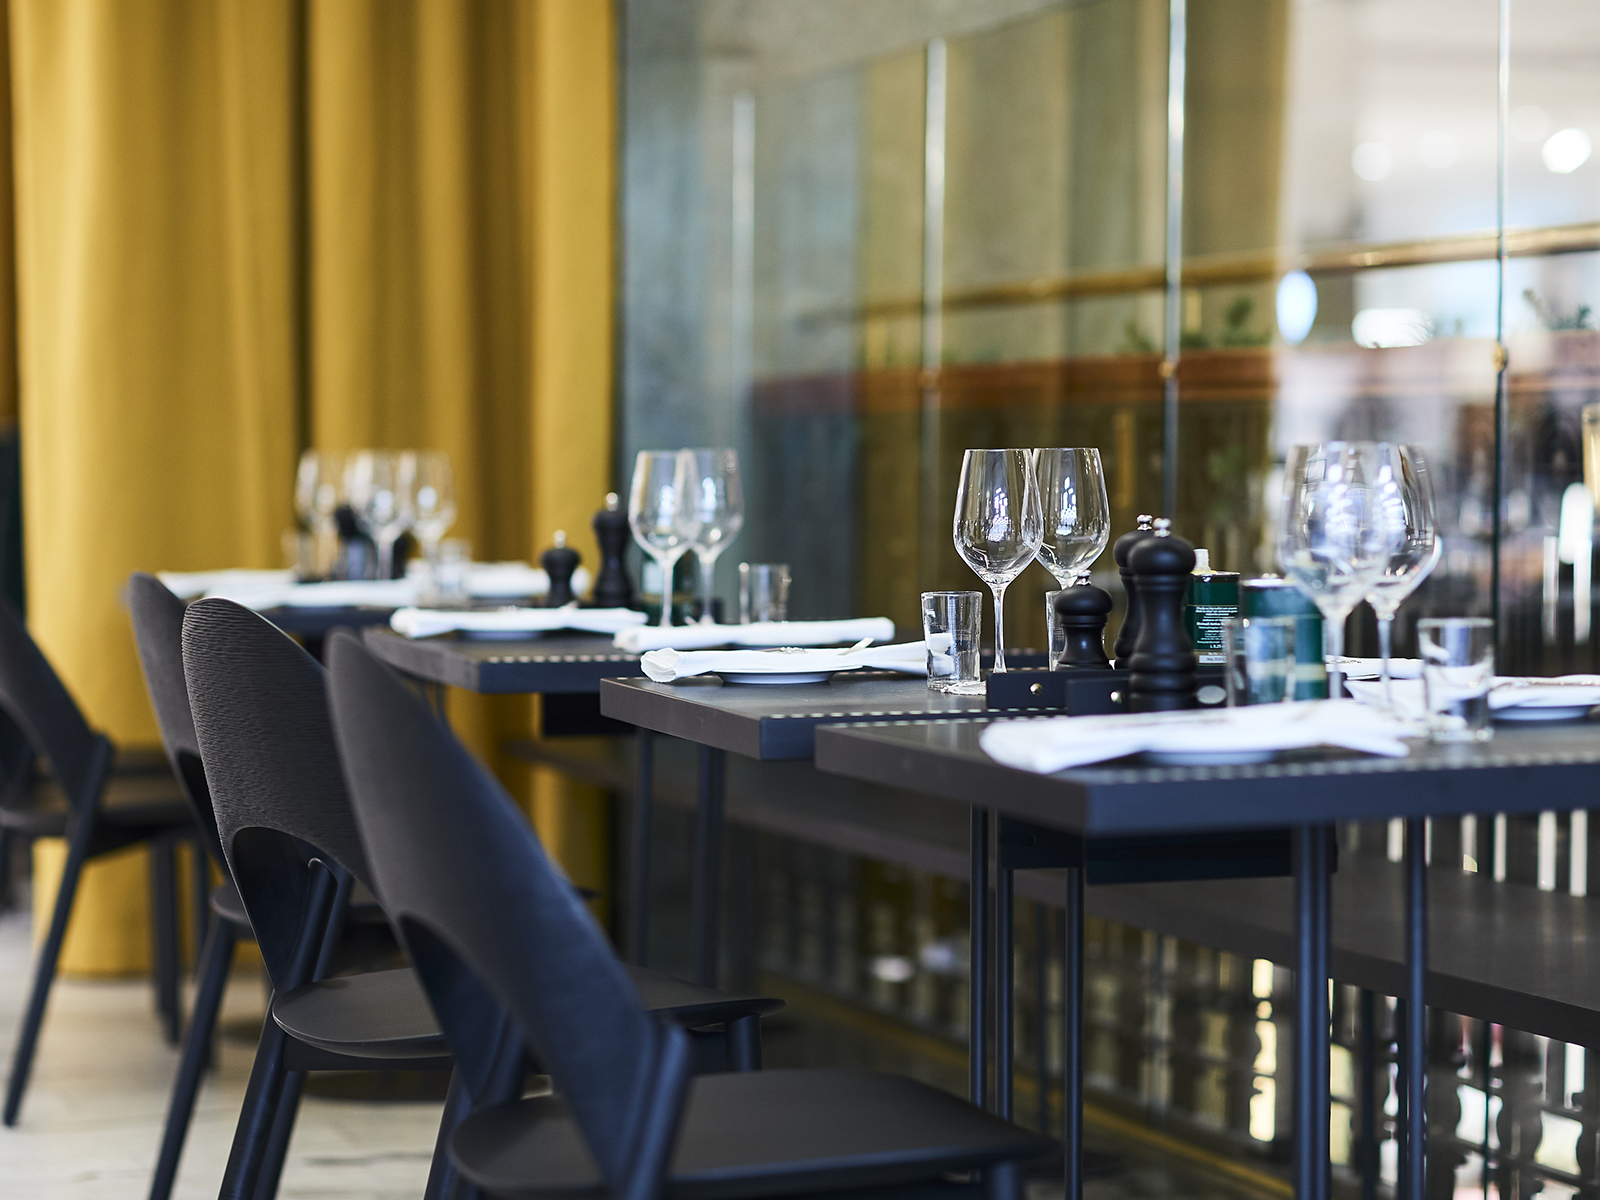 Positano Yes NK - New restaurant project located at NK, Stockholm opened Nov 2019